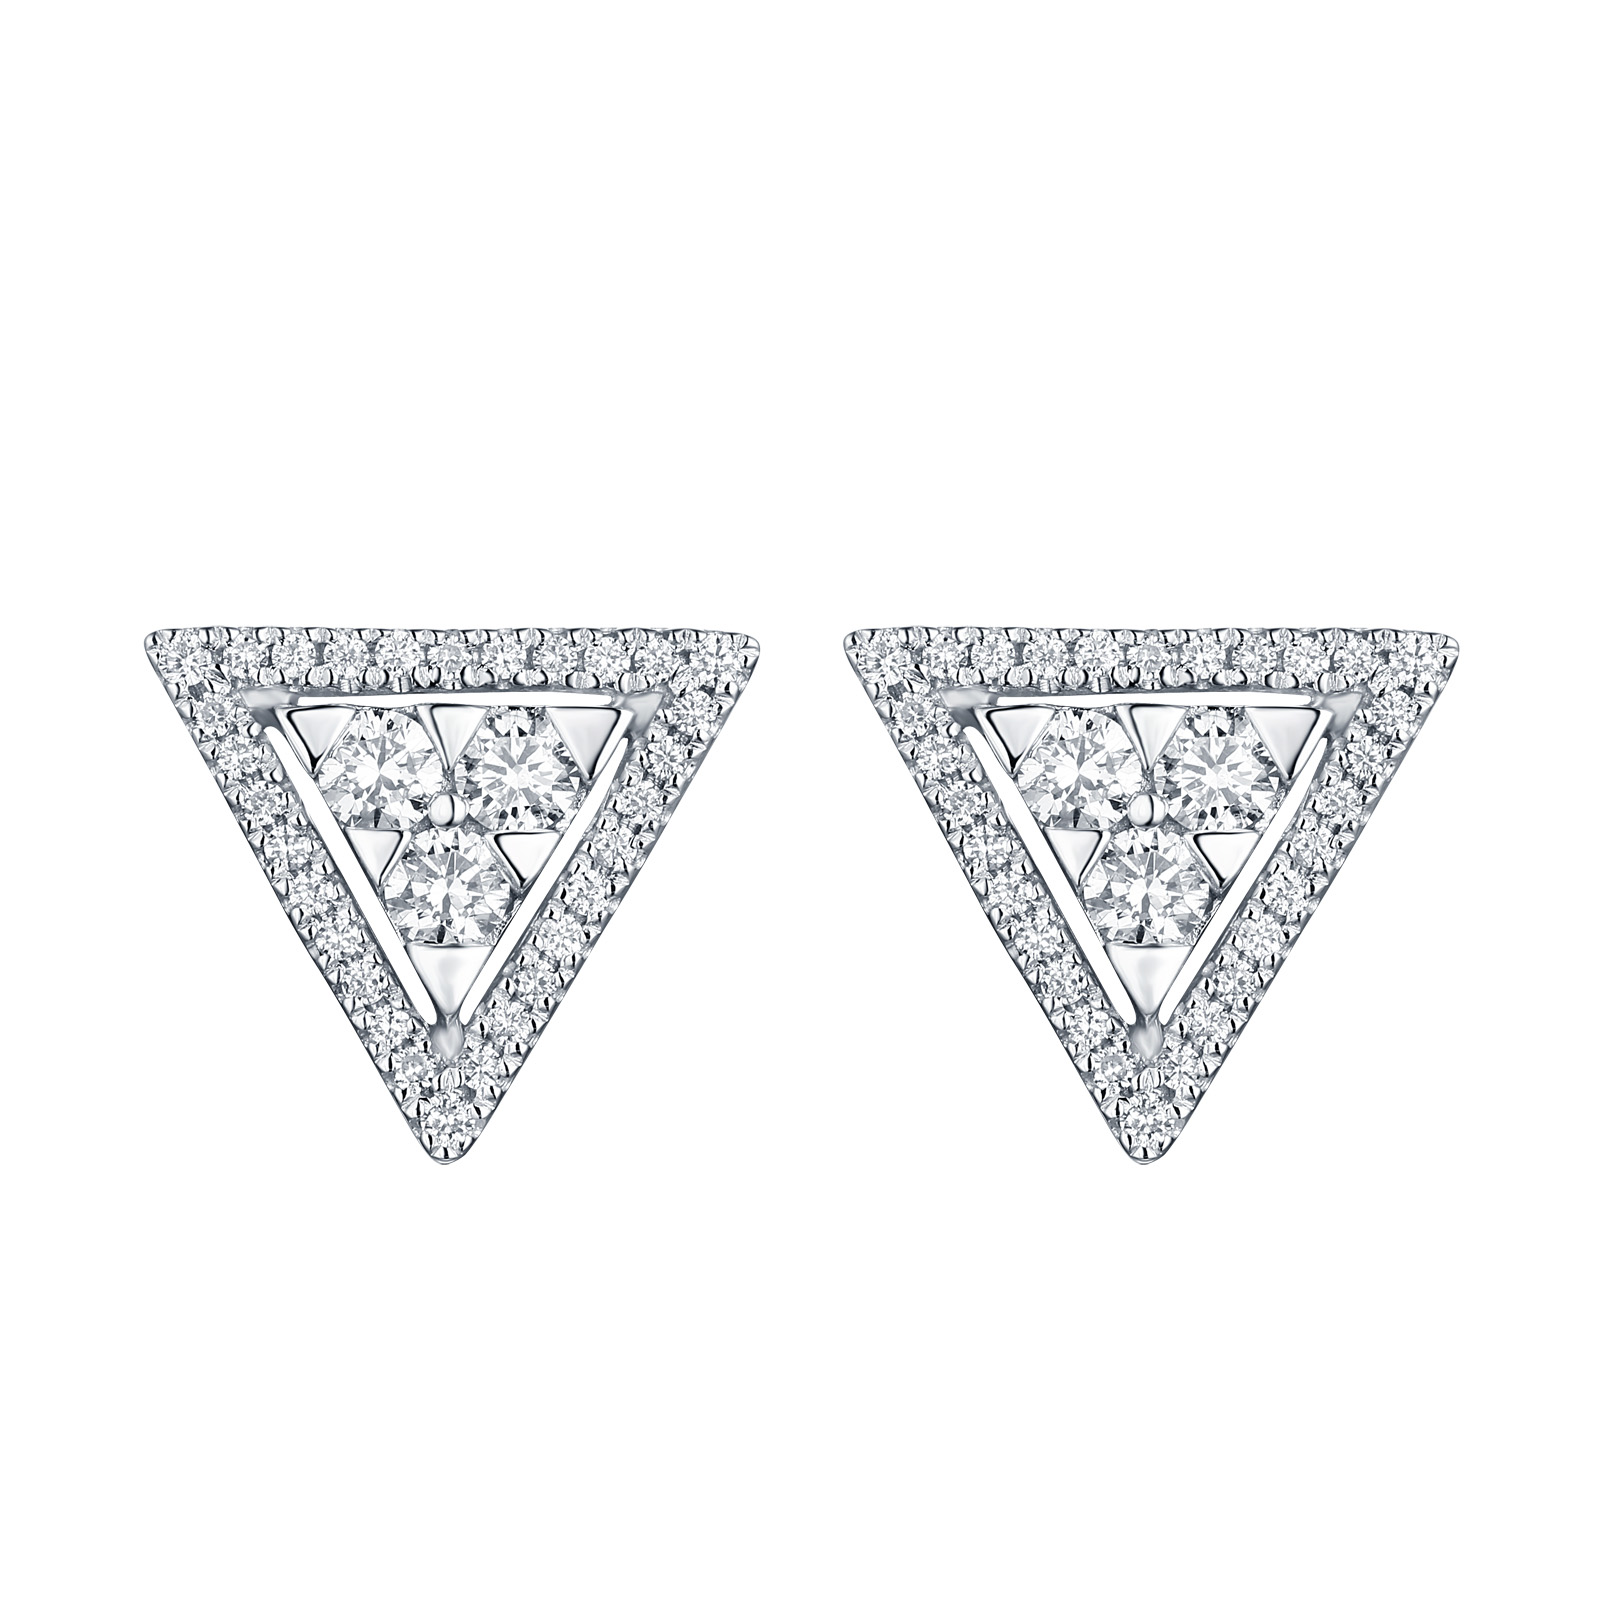 E25208WHT- 14K White Gold Diamond Earrings, 0.50 TCW